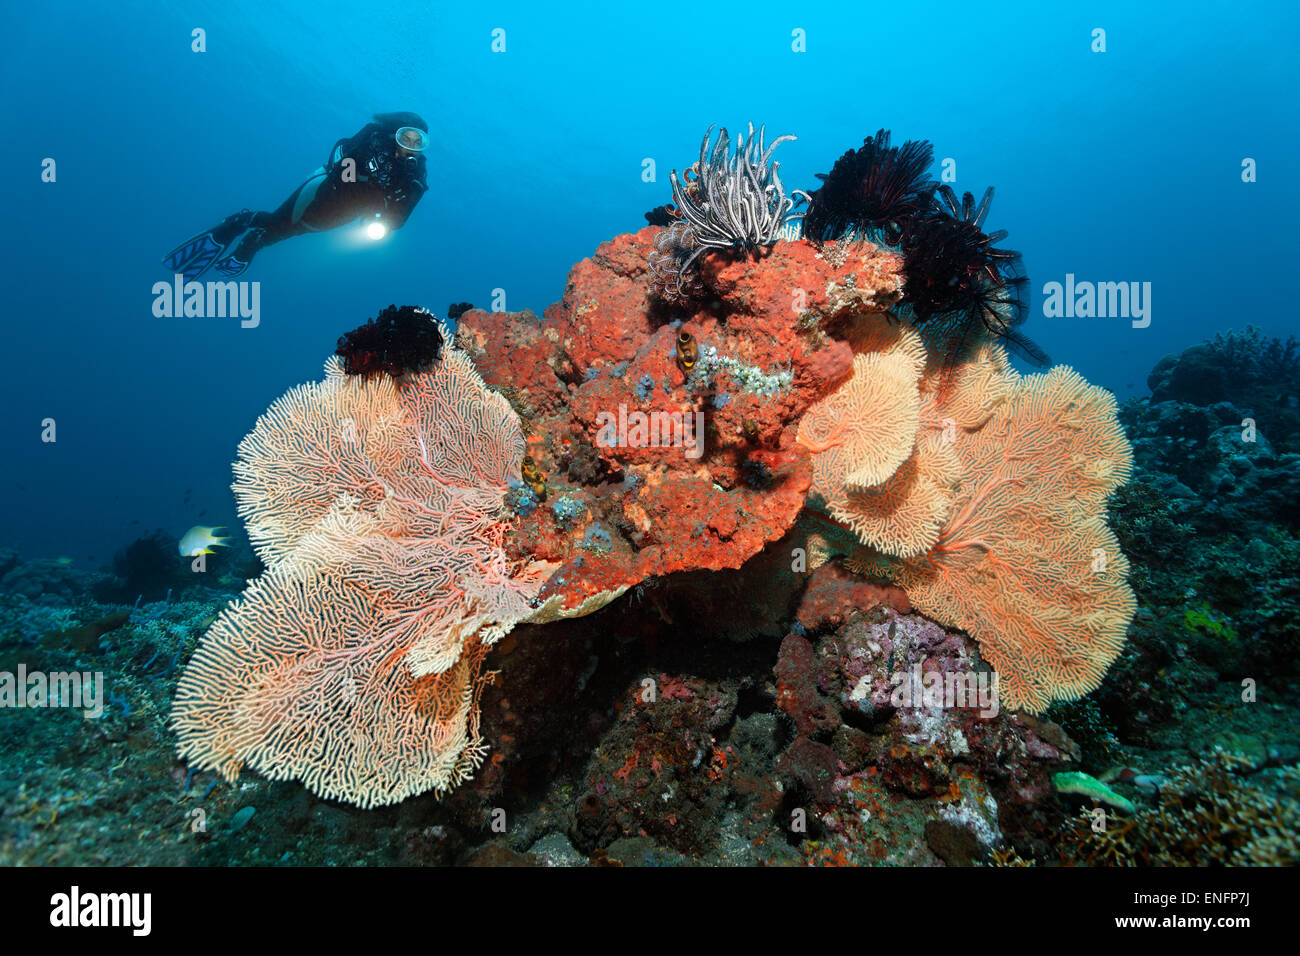 Diver looking at coral reef with various corals, sponges and crinoids, Bali - Stock Image